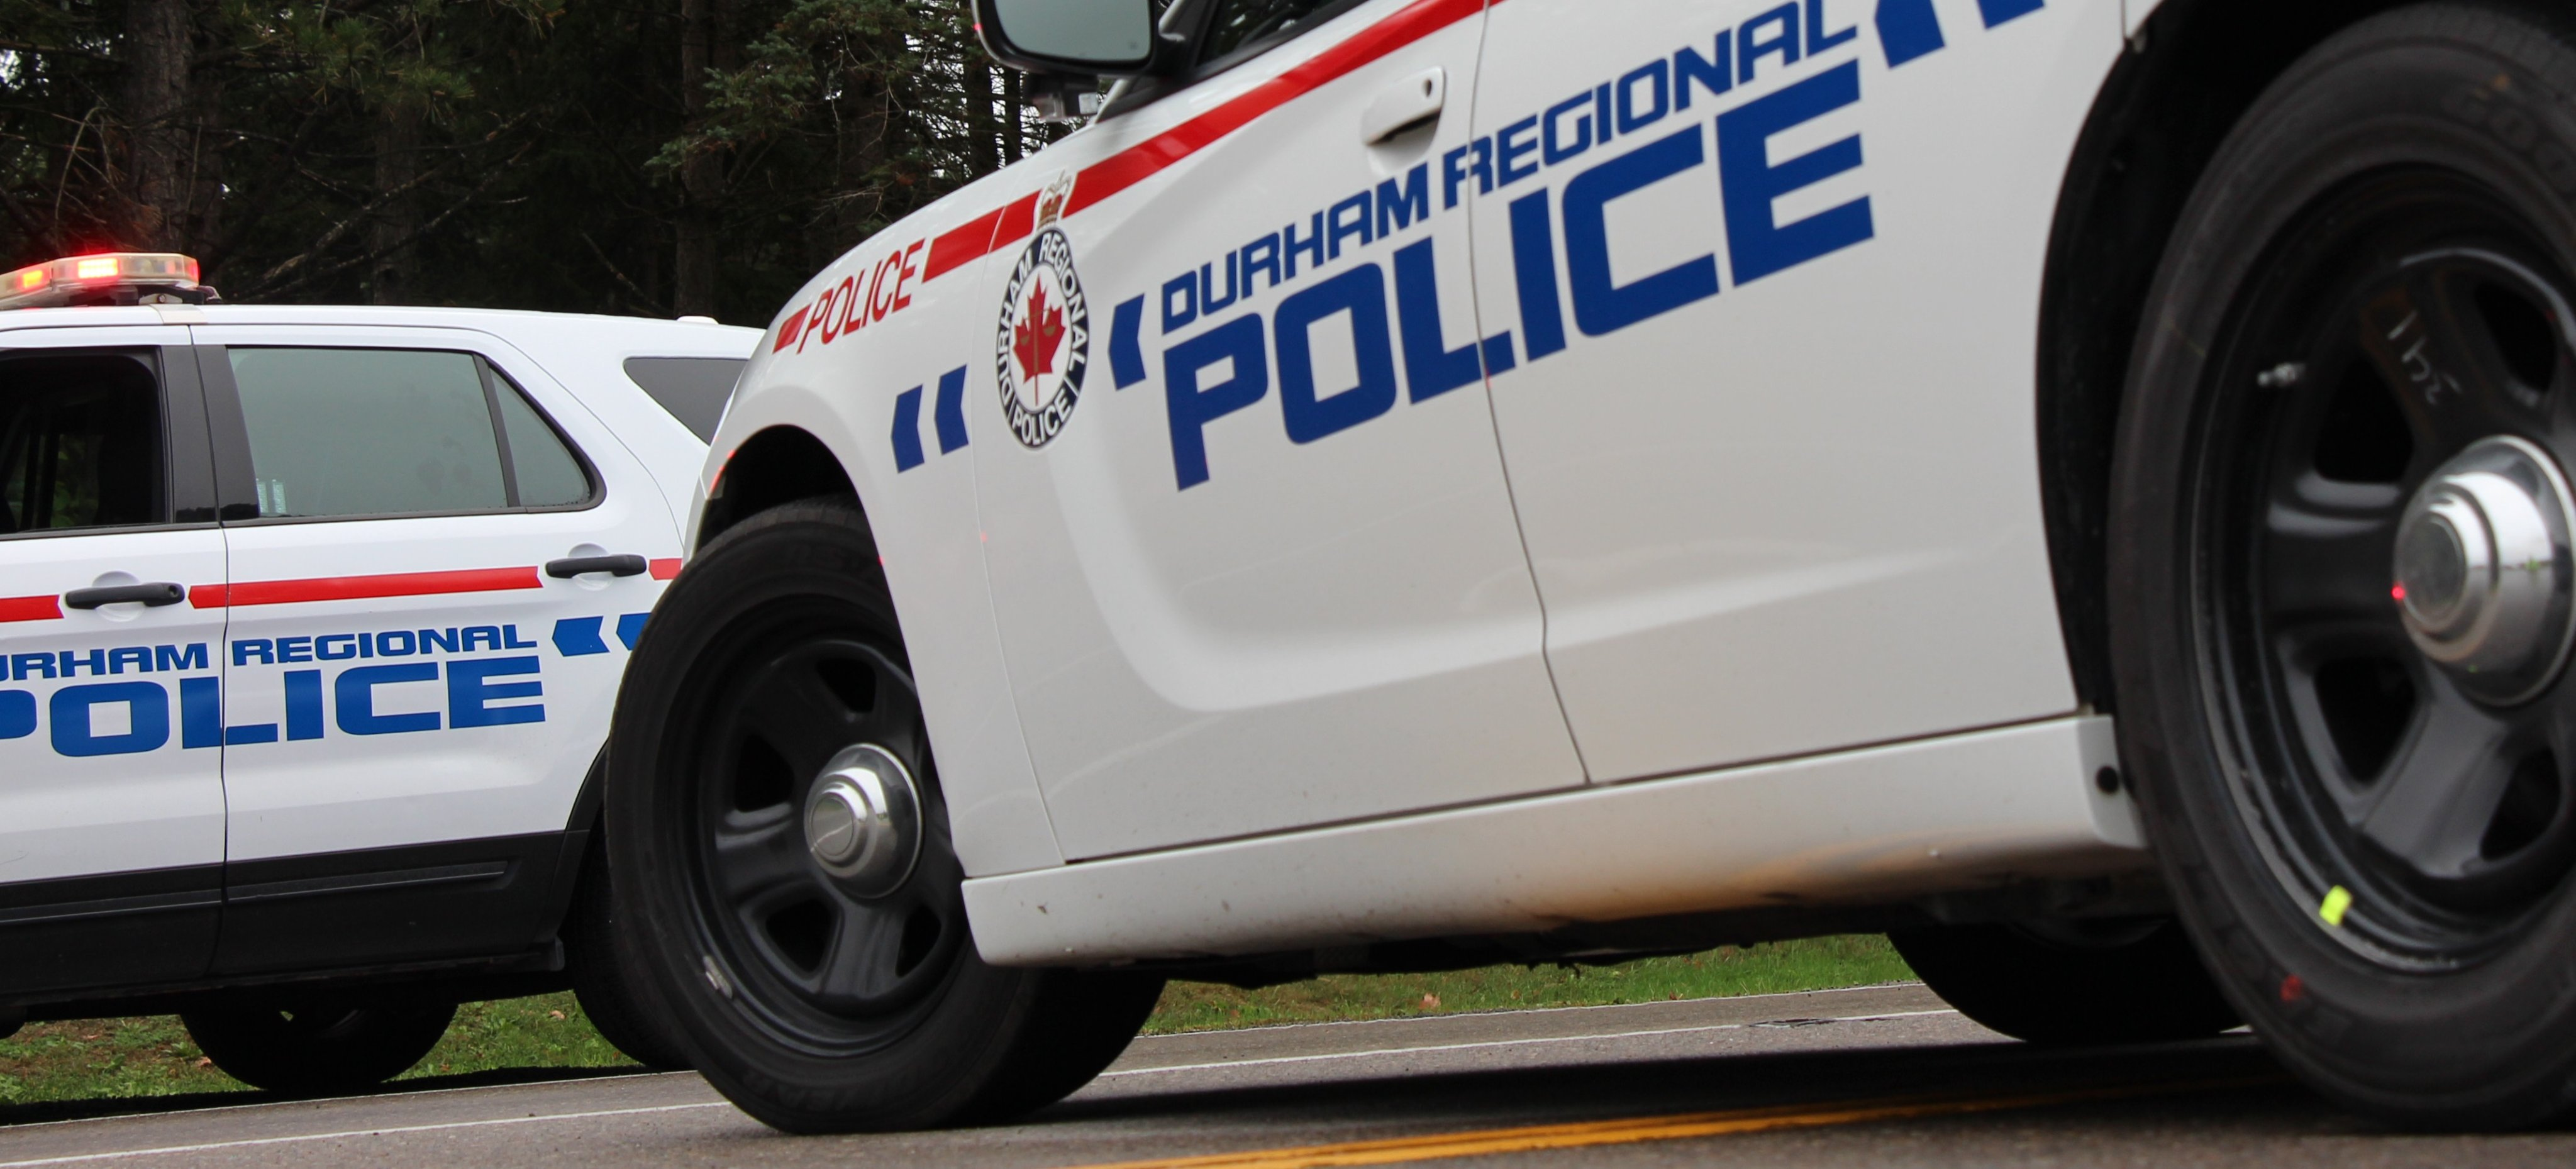 Whitby man charged after allegedly commiting indecent acts